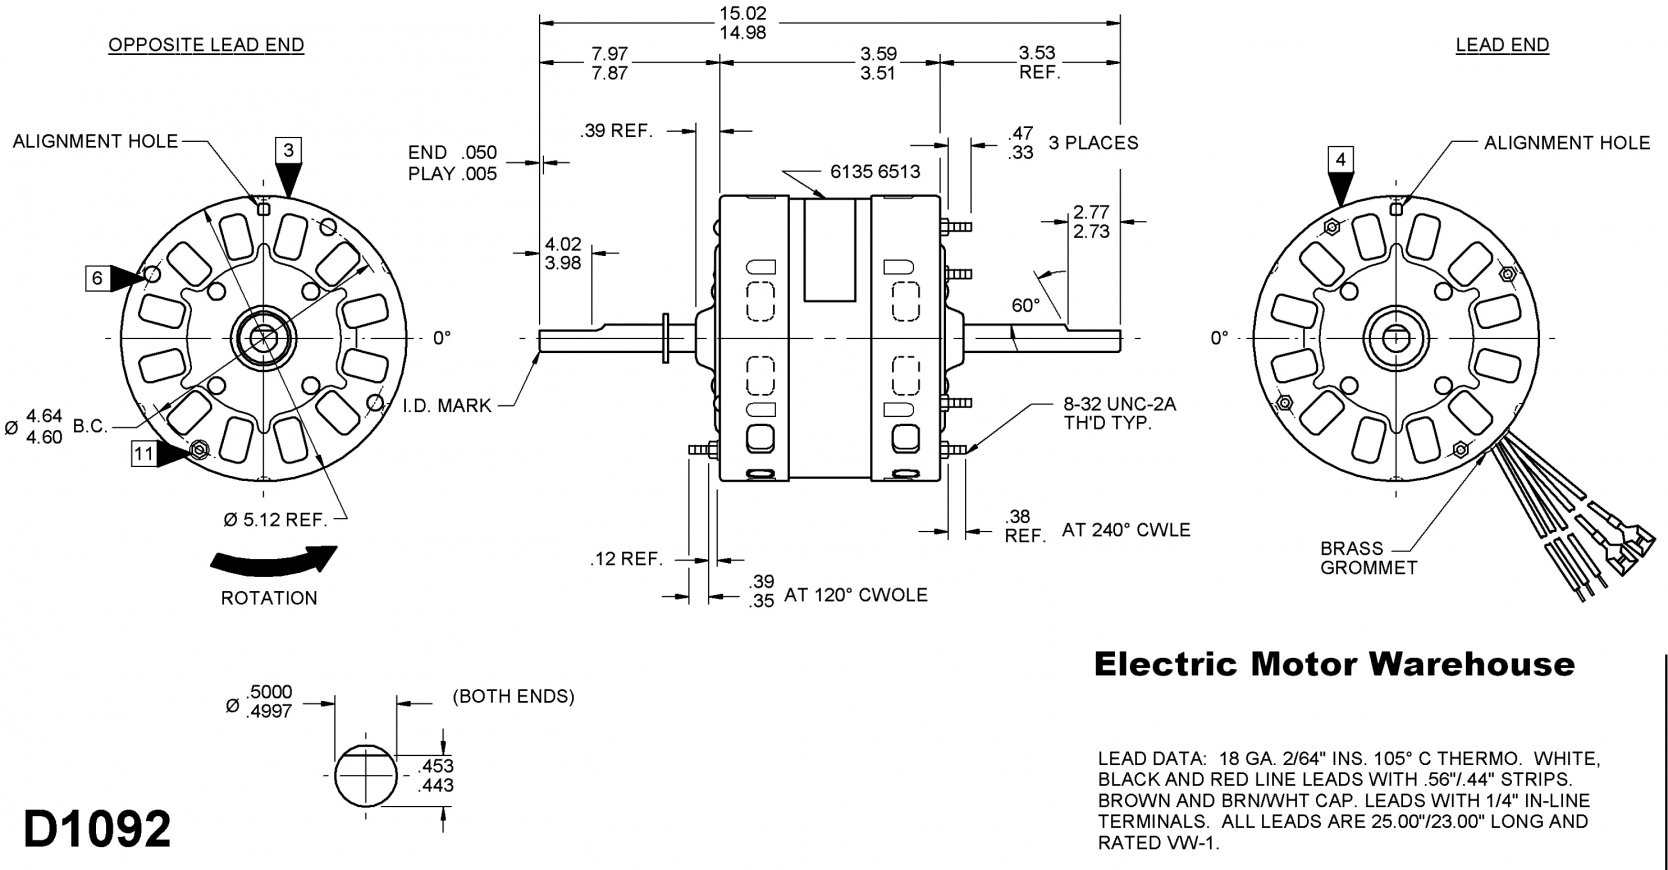 115230 Volt Electric Motor Wiring Diagram | Wiring Diagram - Century Ac Motor Wiring Diagram 115 230 Volts